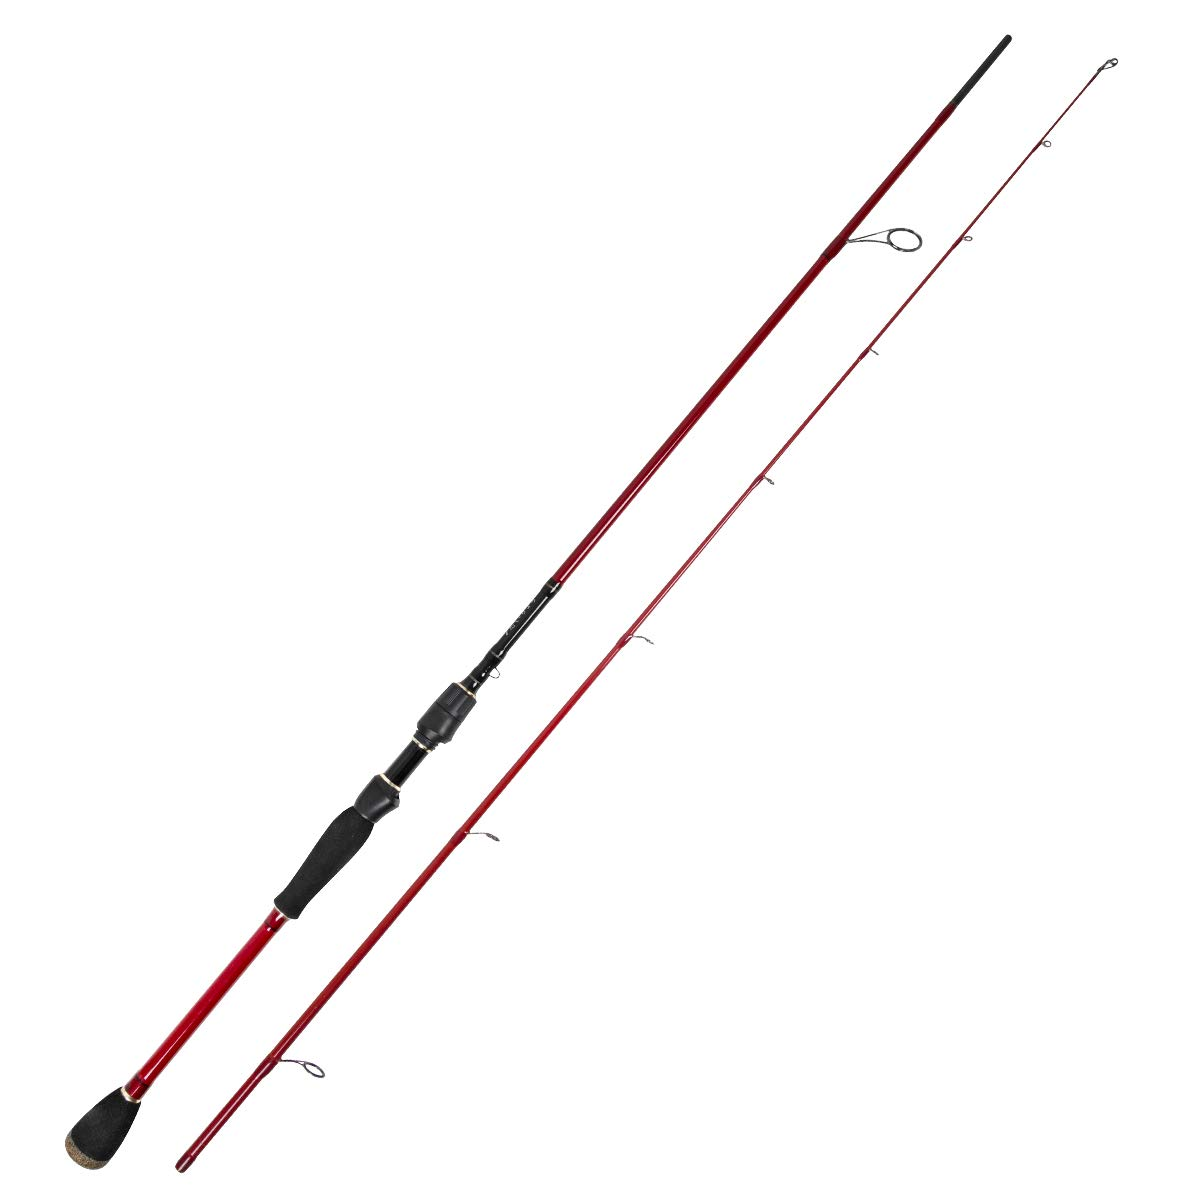 TAIRYO Spinning Fishing Rods 2-Piece, 24 Ton Carbon Fiber Rod with Durable Stainless Steel Guides for Travel Surf Saltwater Freshwater Bass Boat Fishing by TAIRYO